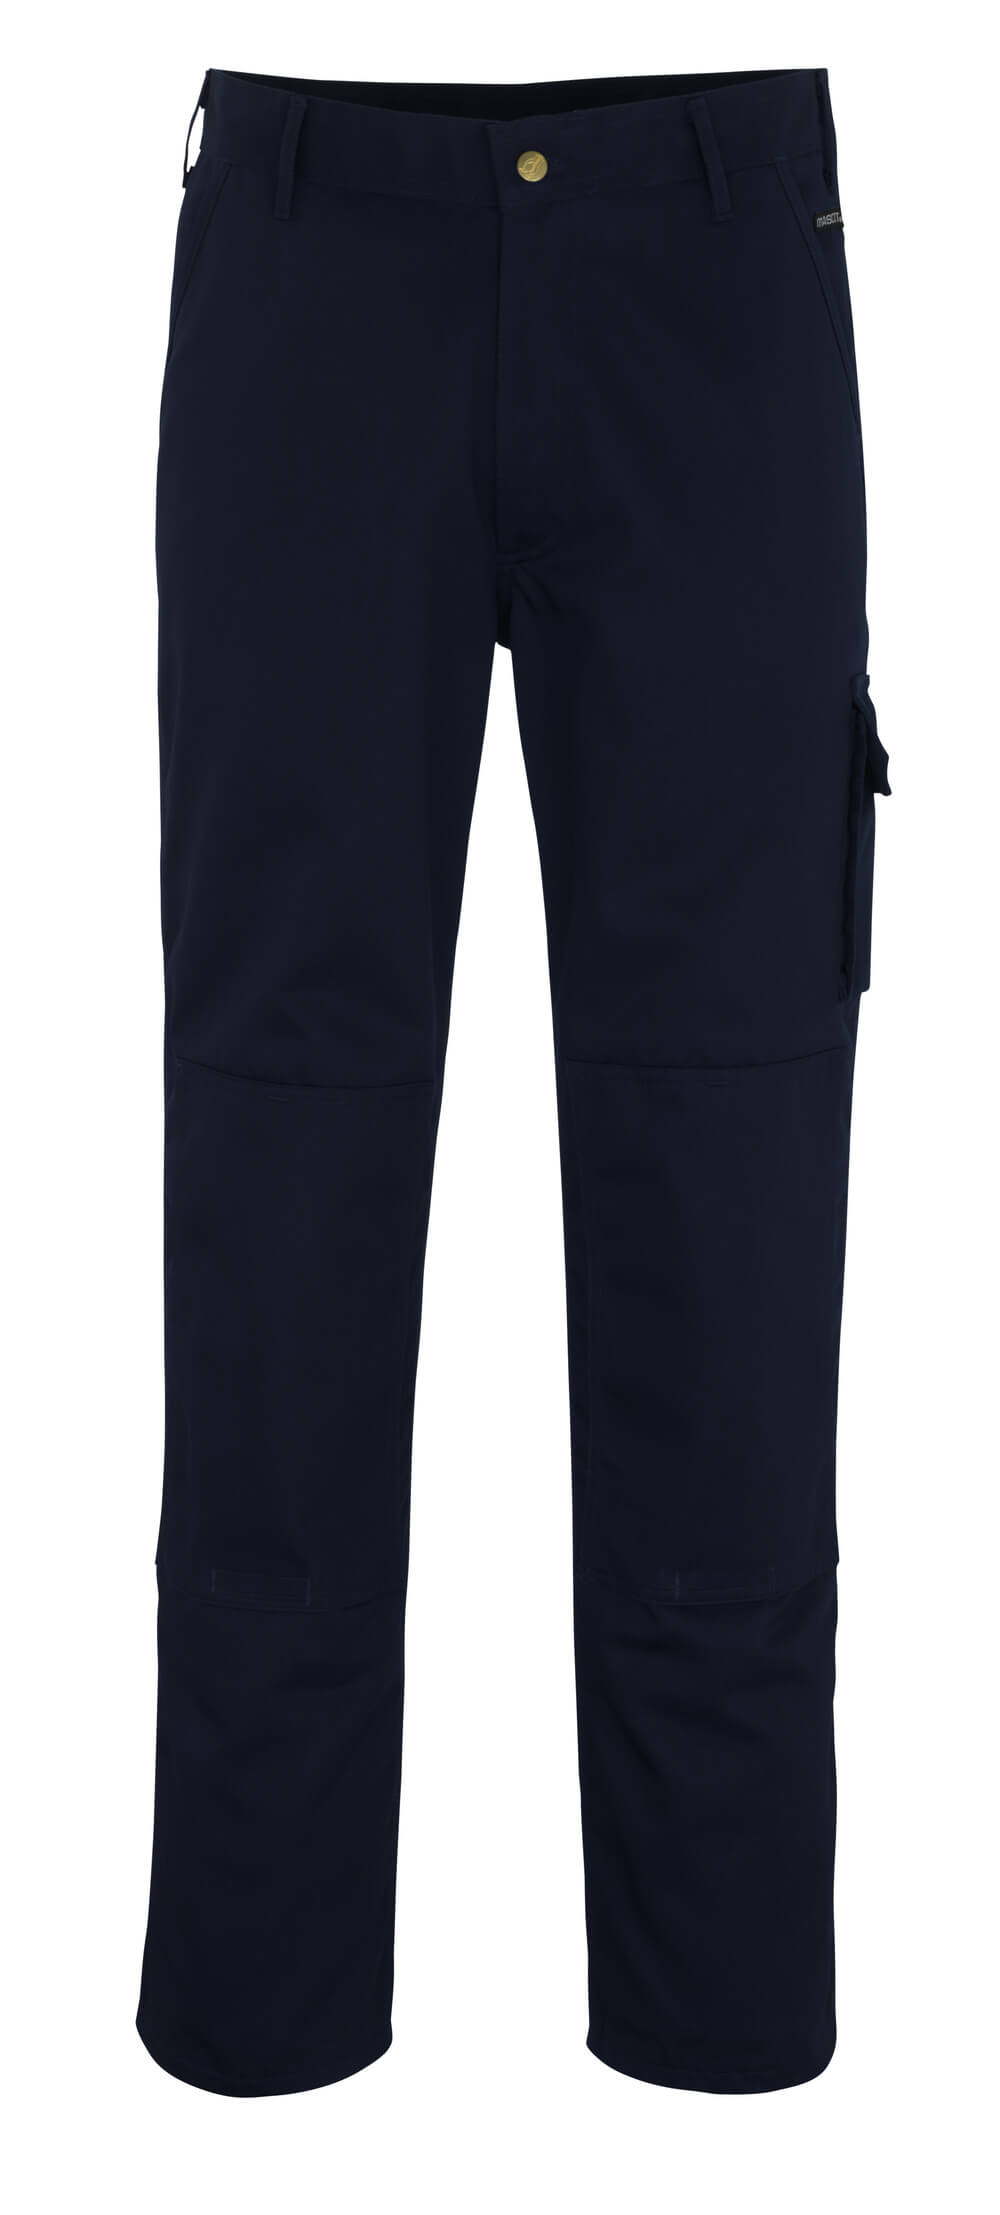 00279-430-01 Pants with kneepad pockets - navy